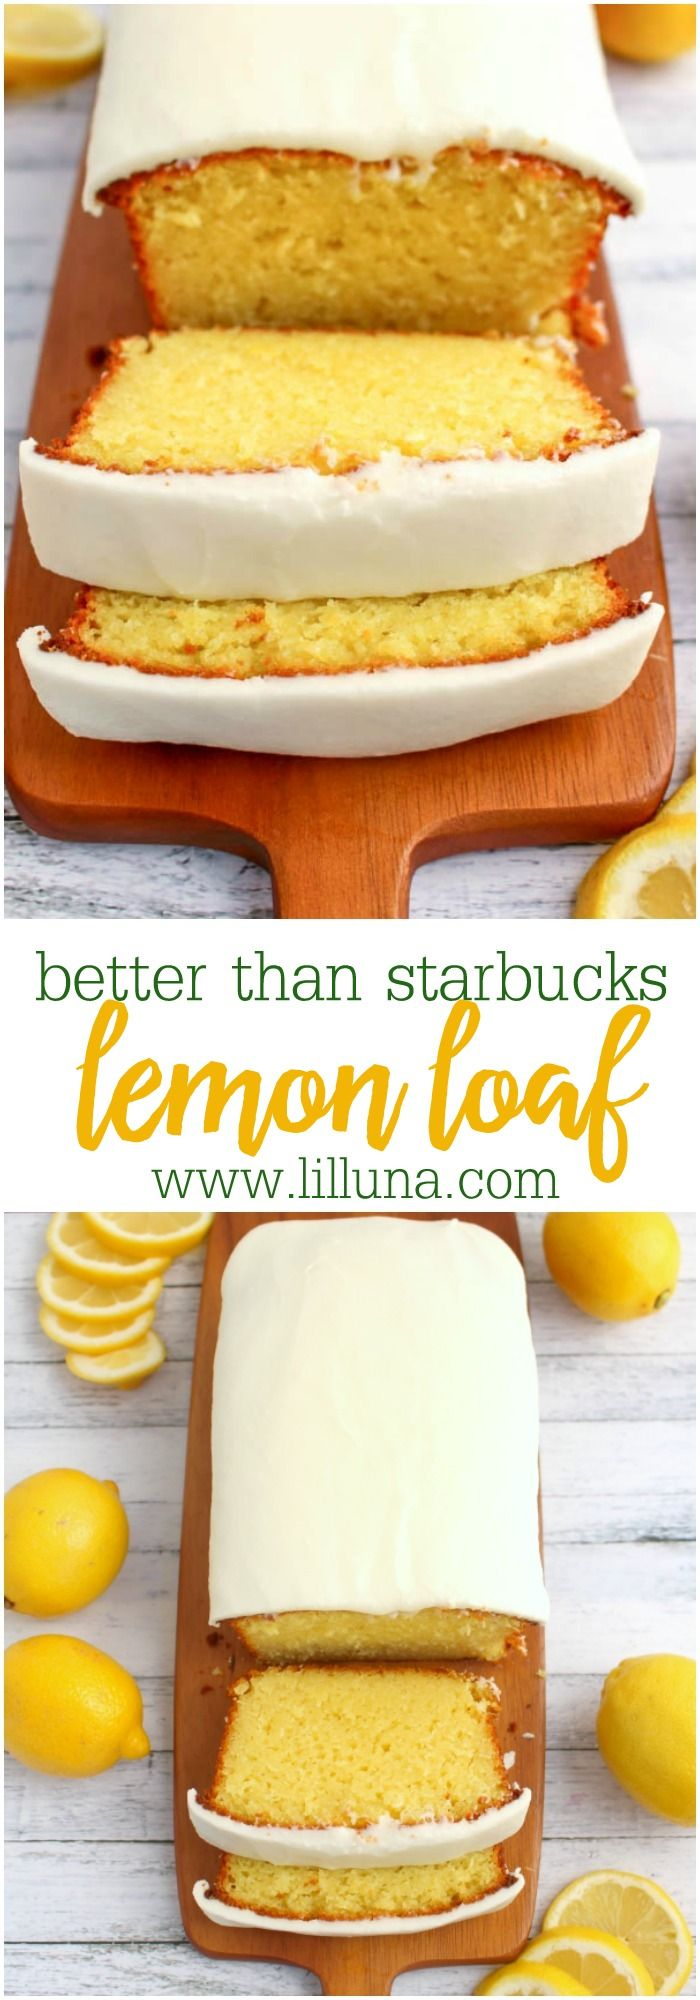 If you like Starbucks Lemon Loaf, then you'll love this moist, delicious Lemon cake! This easy to make recipe, is loaded with delicious lemon flavor, and topped with an amazing lemon frosting.